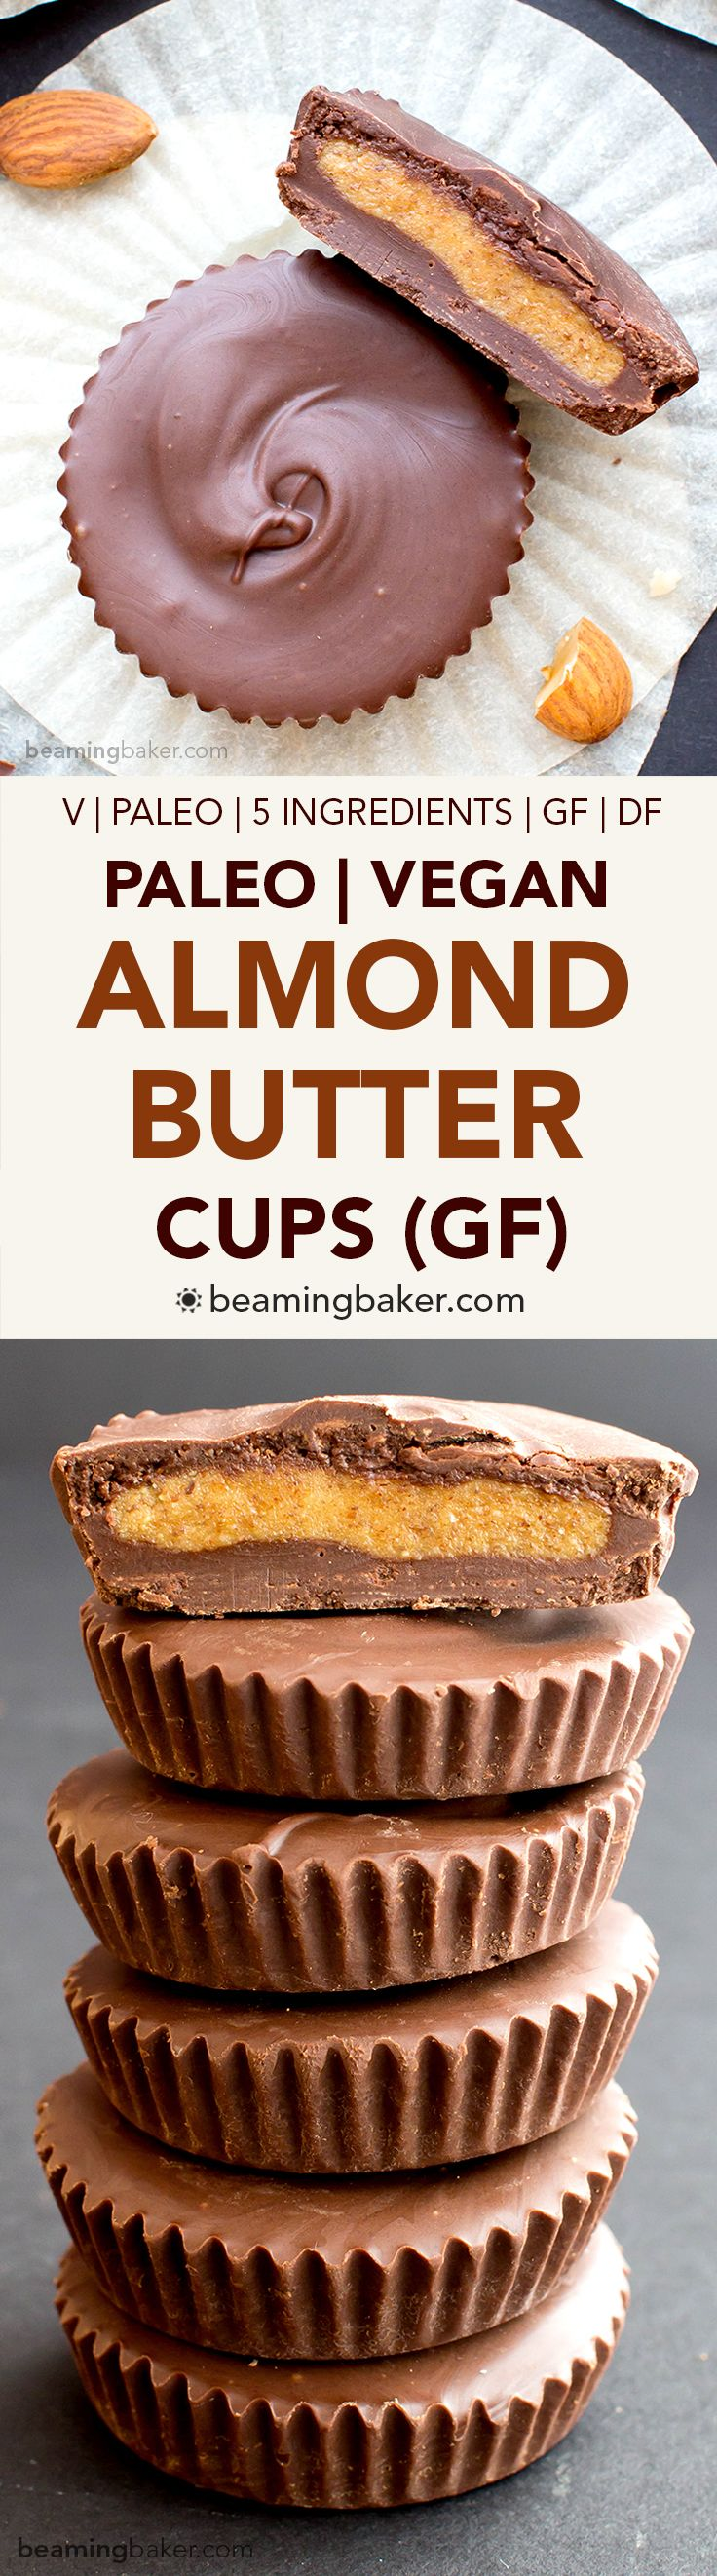 Paleo Almond Butter Cups V Gf Df A 5 Ingredient Recipe For